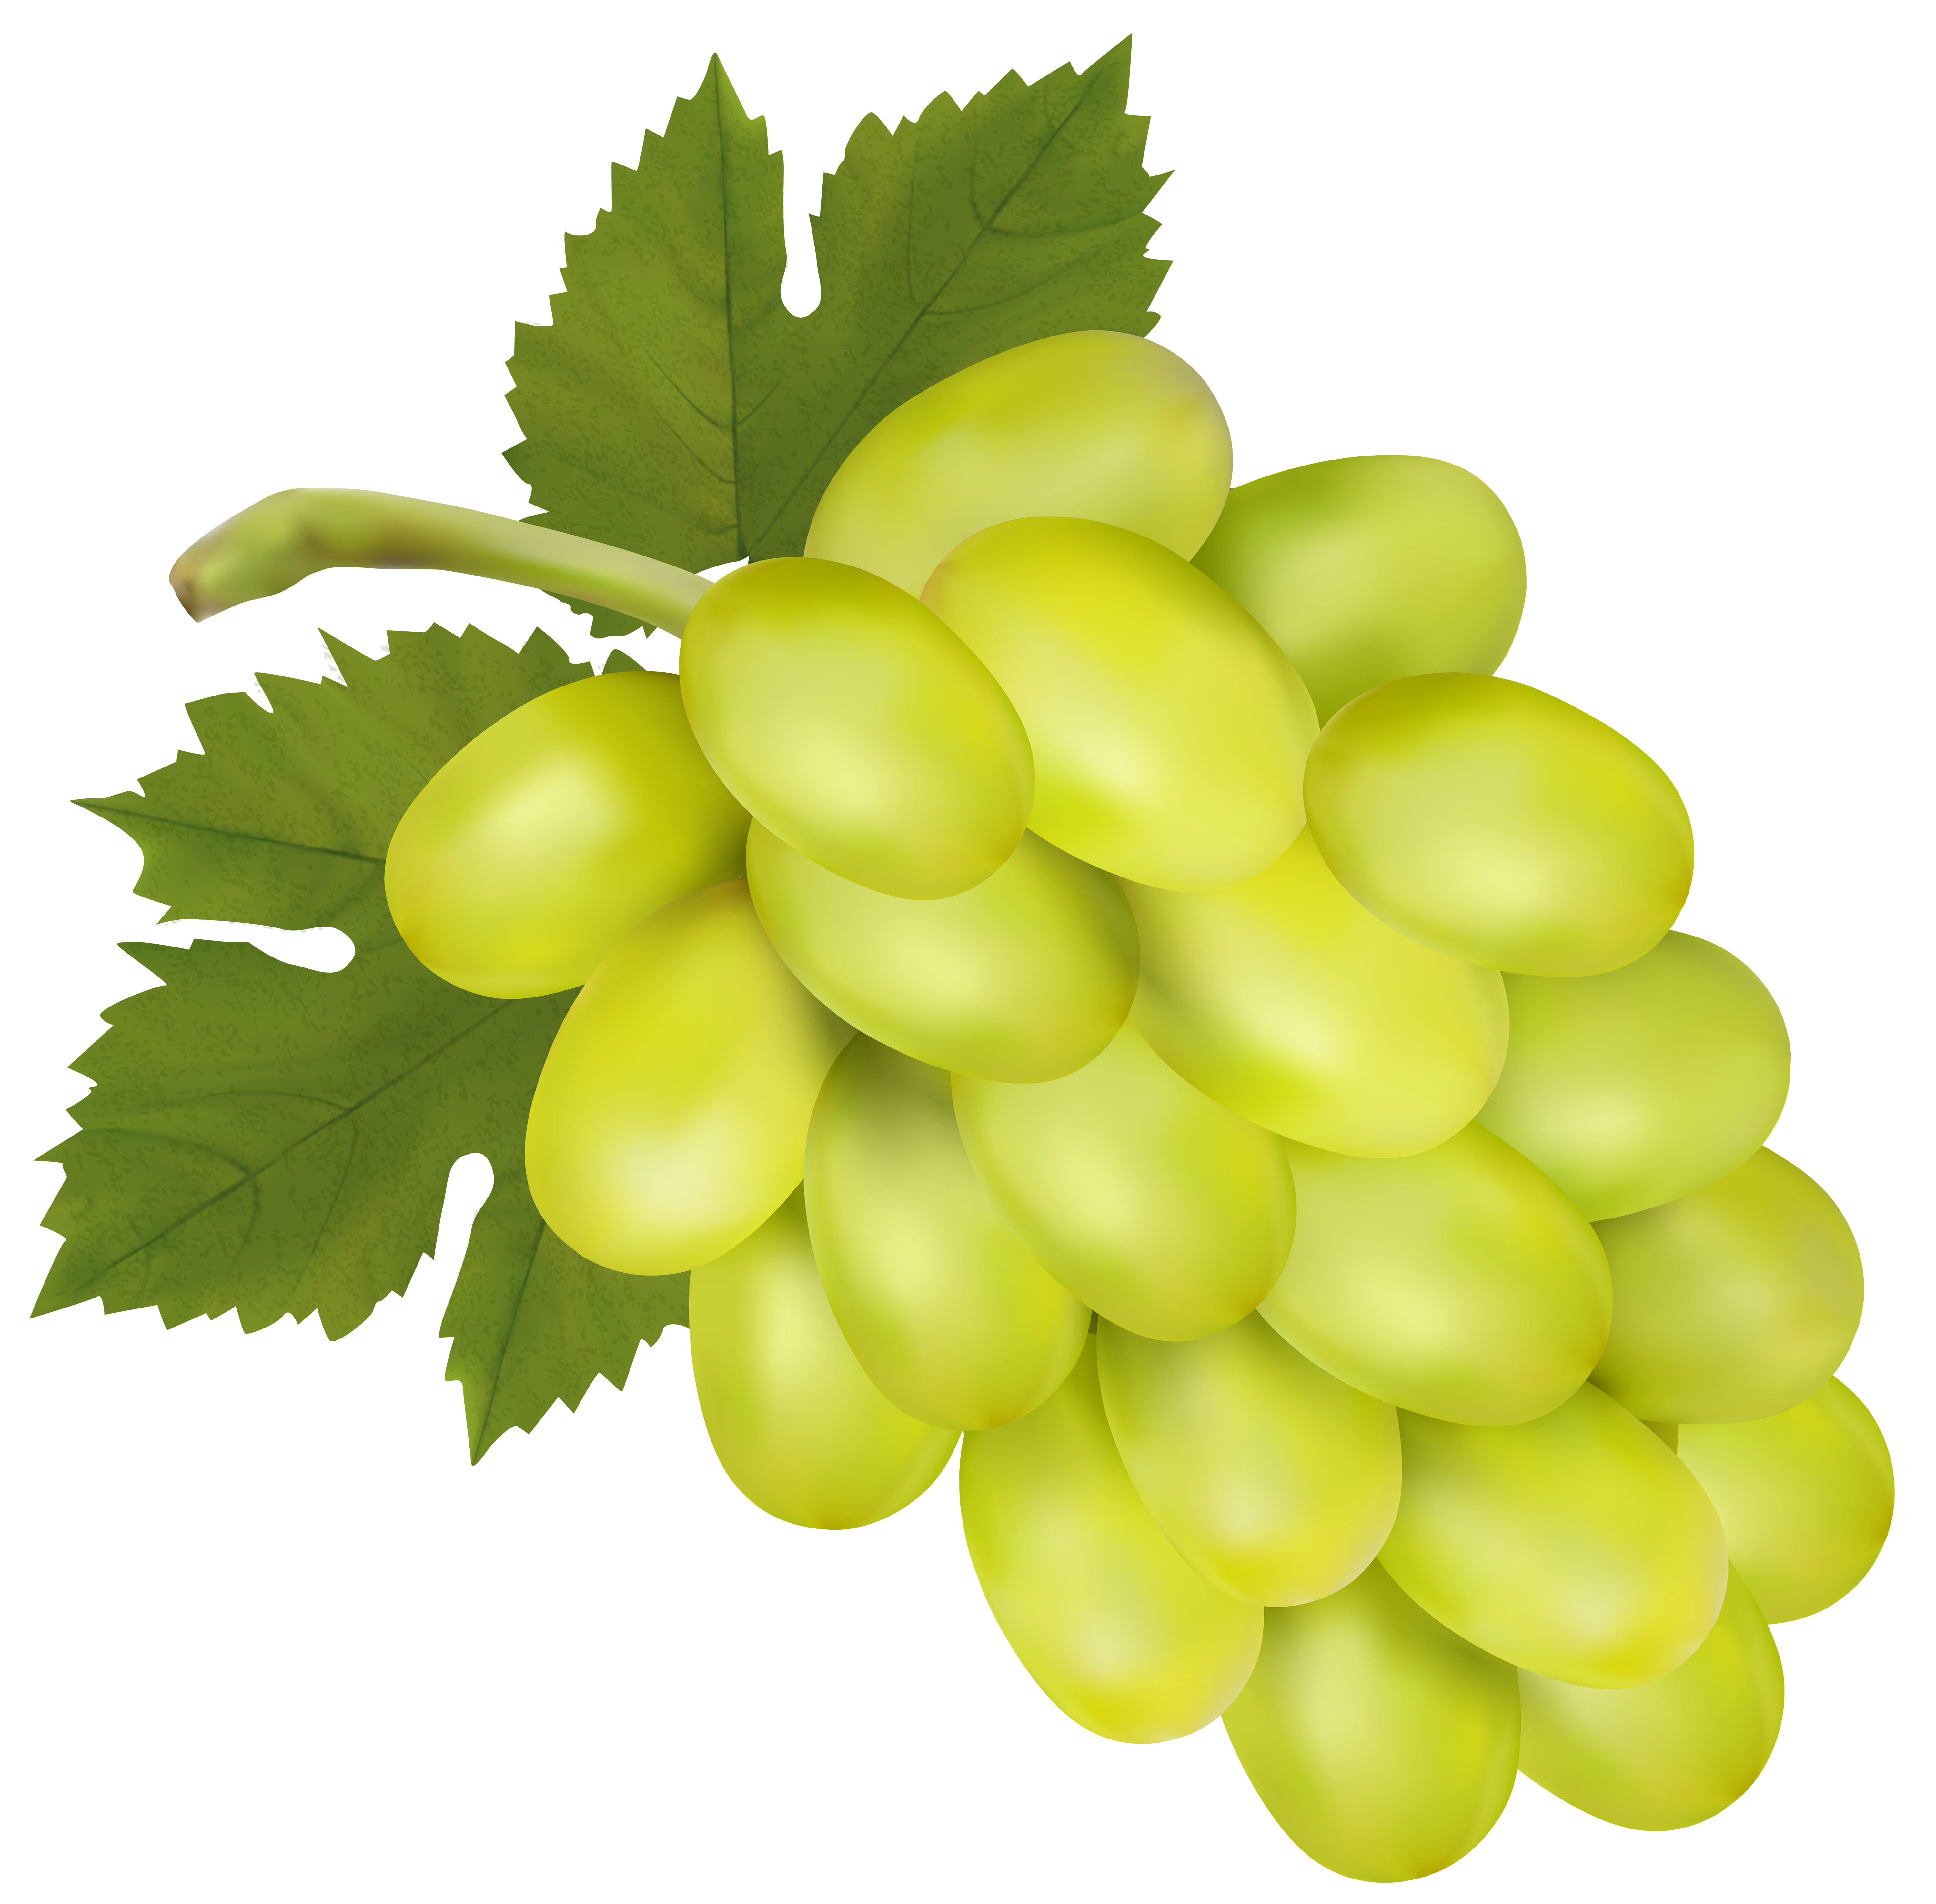 White grapes clipart vector transparent download White Grape PNG Clip Art Image | Gallery Yopriceville ... vector transparent download